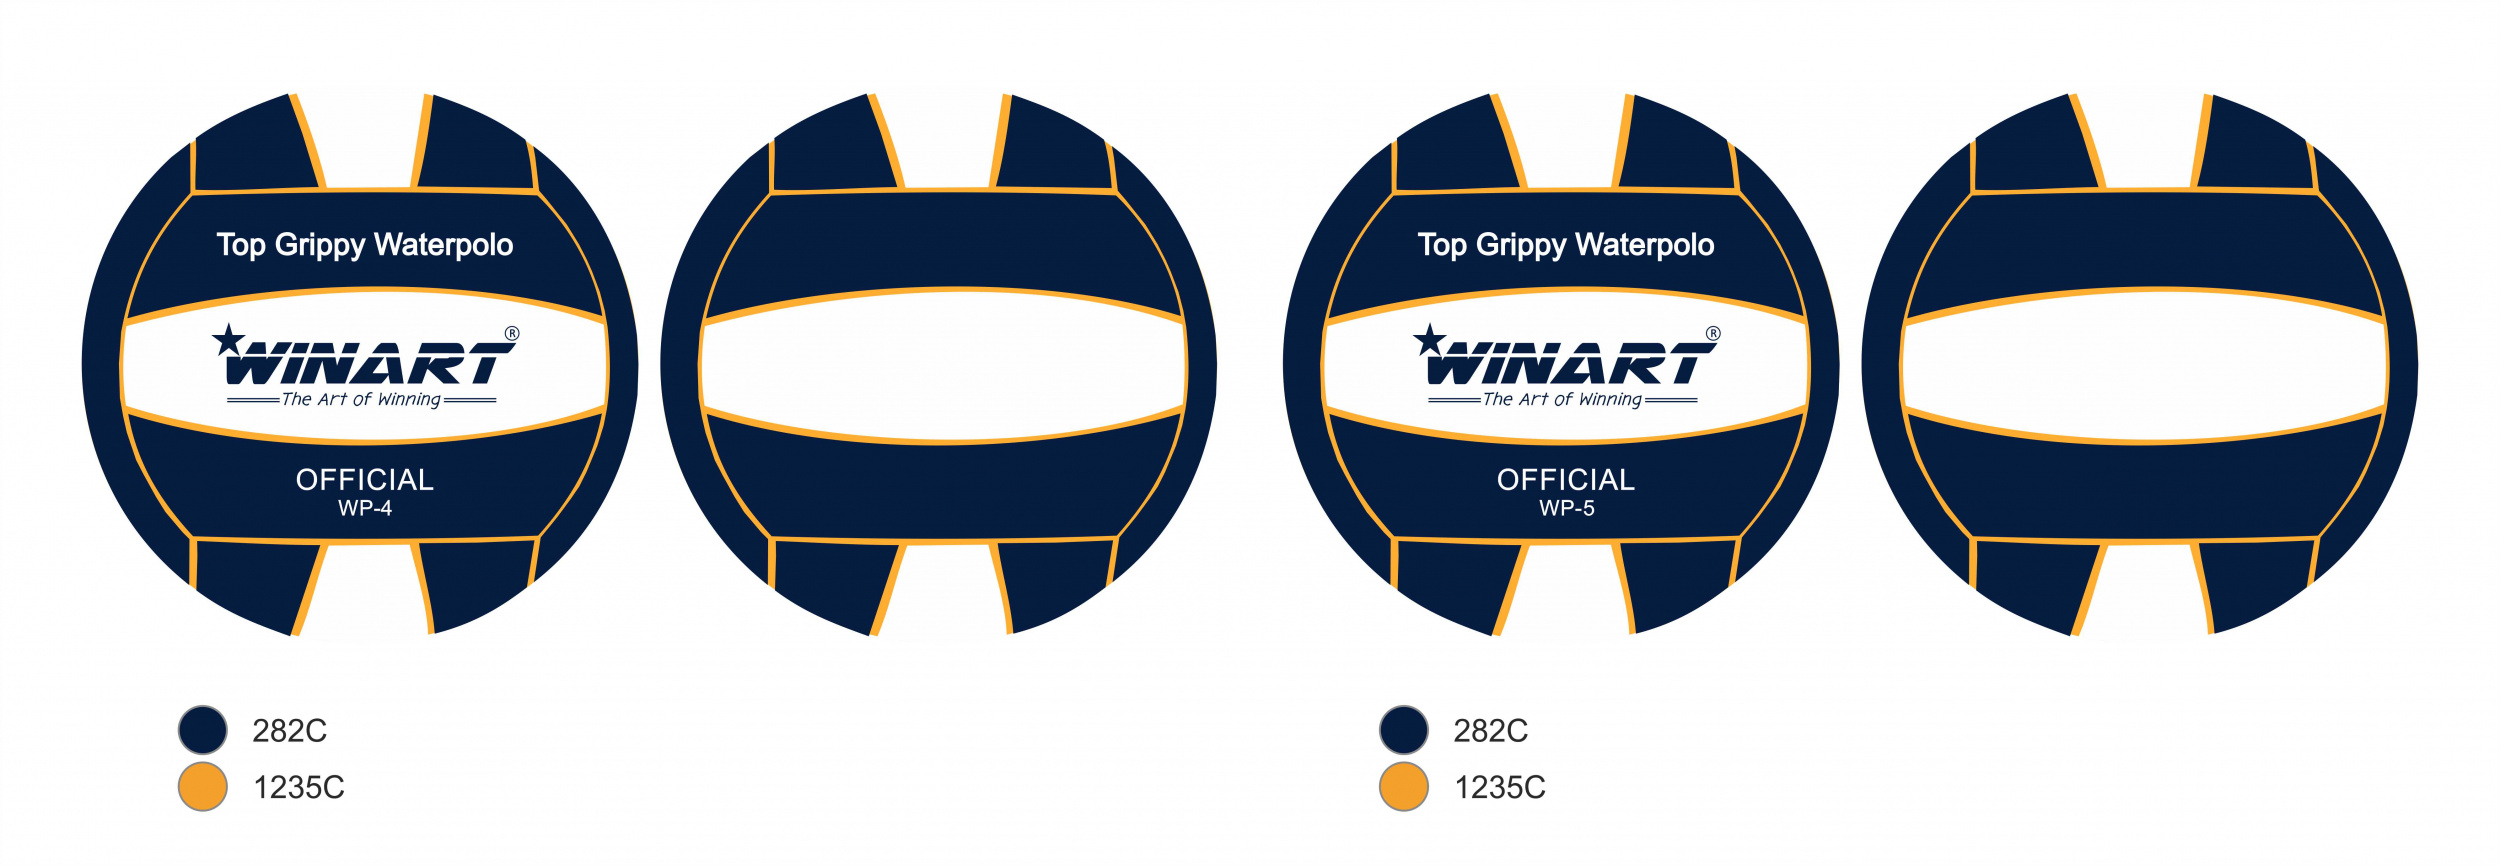 Winart Waterpolobal pupil navy/ whit/navy mt. 3